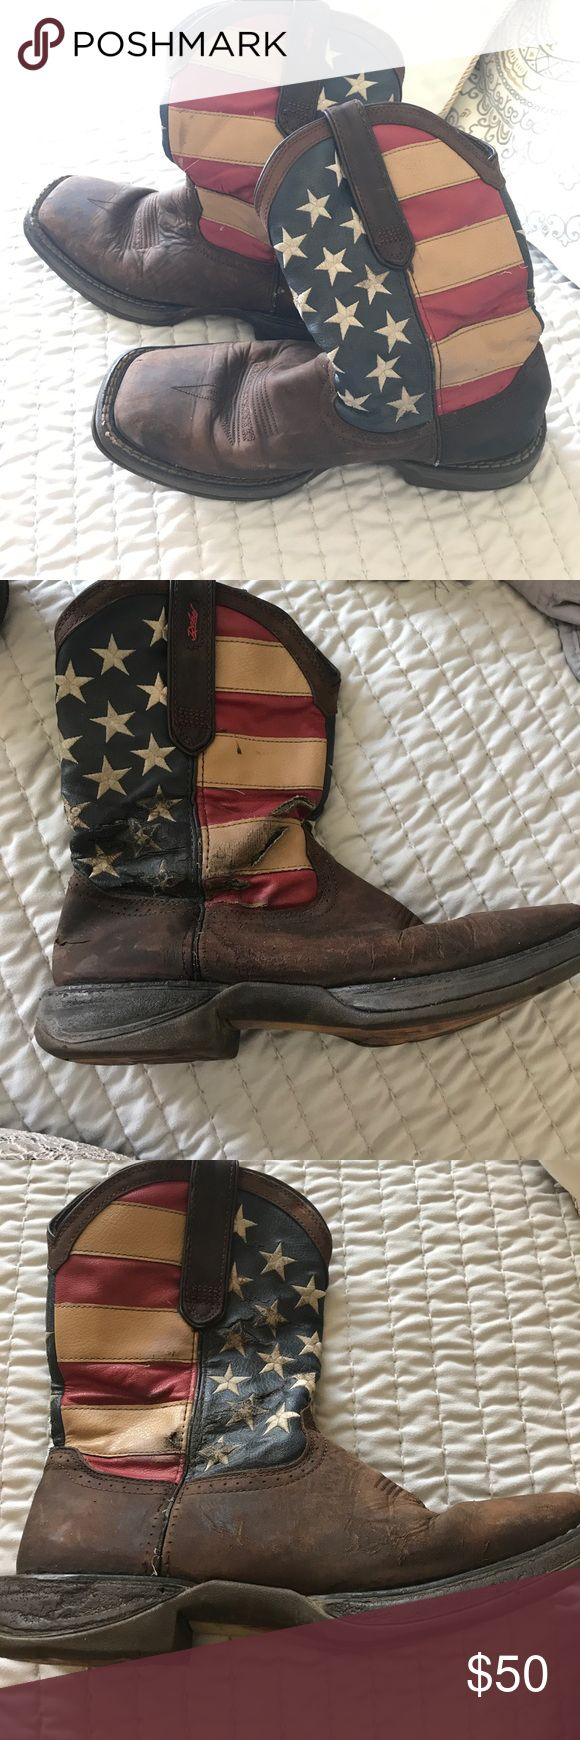 Durango rebel men's cowboy boots American flag men's cowboy boots. Slightly worn, ripped on the outside of the right boot (shown in picture 2) Great long lasting brand with wear still left in them. Make an offer(: durango rebel Shoes Boots